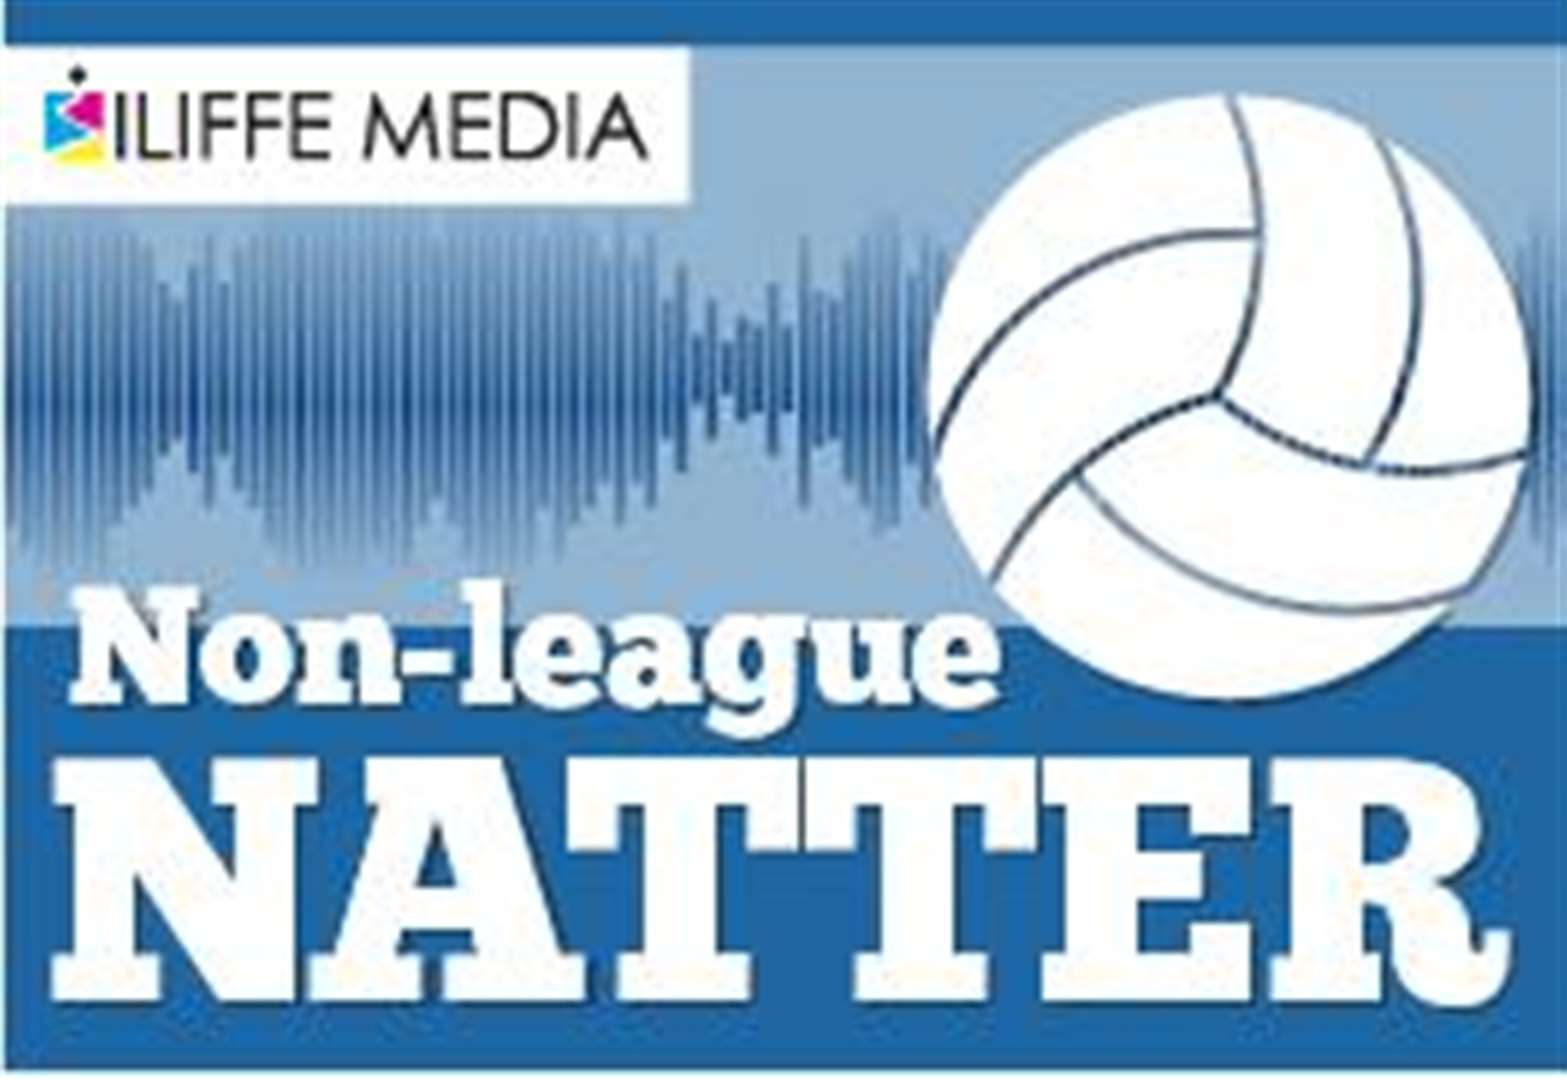 Non-League Natter Podcast: Ep5